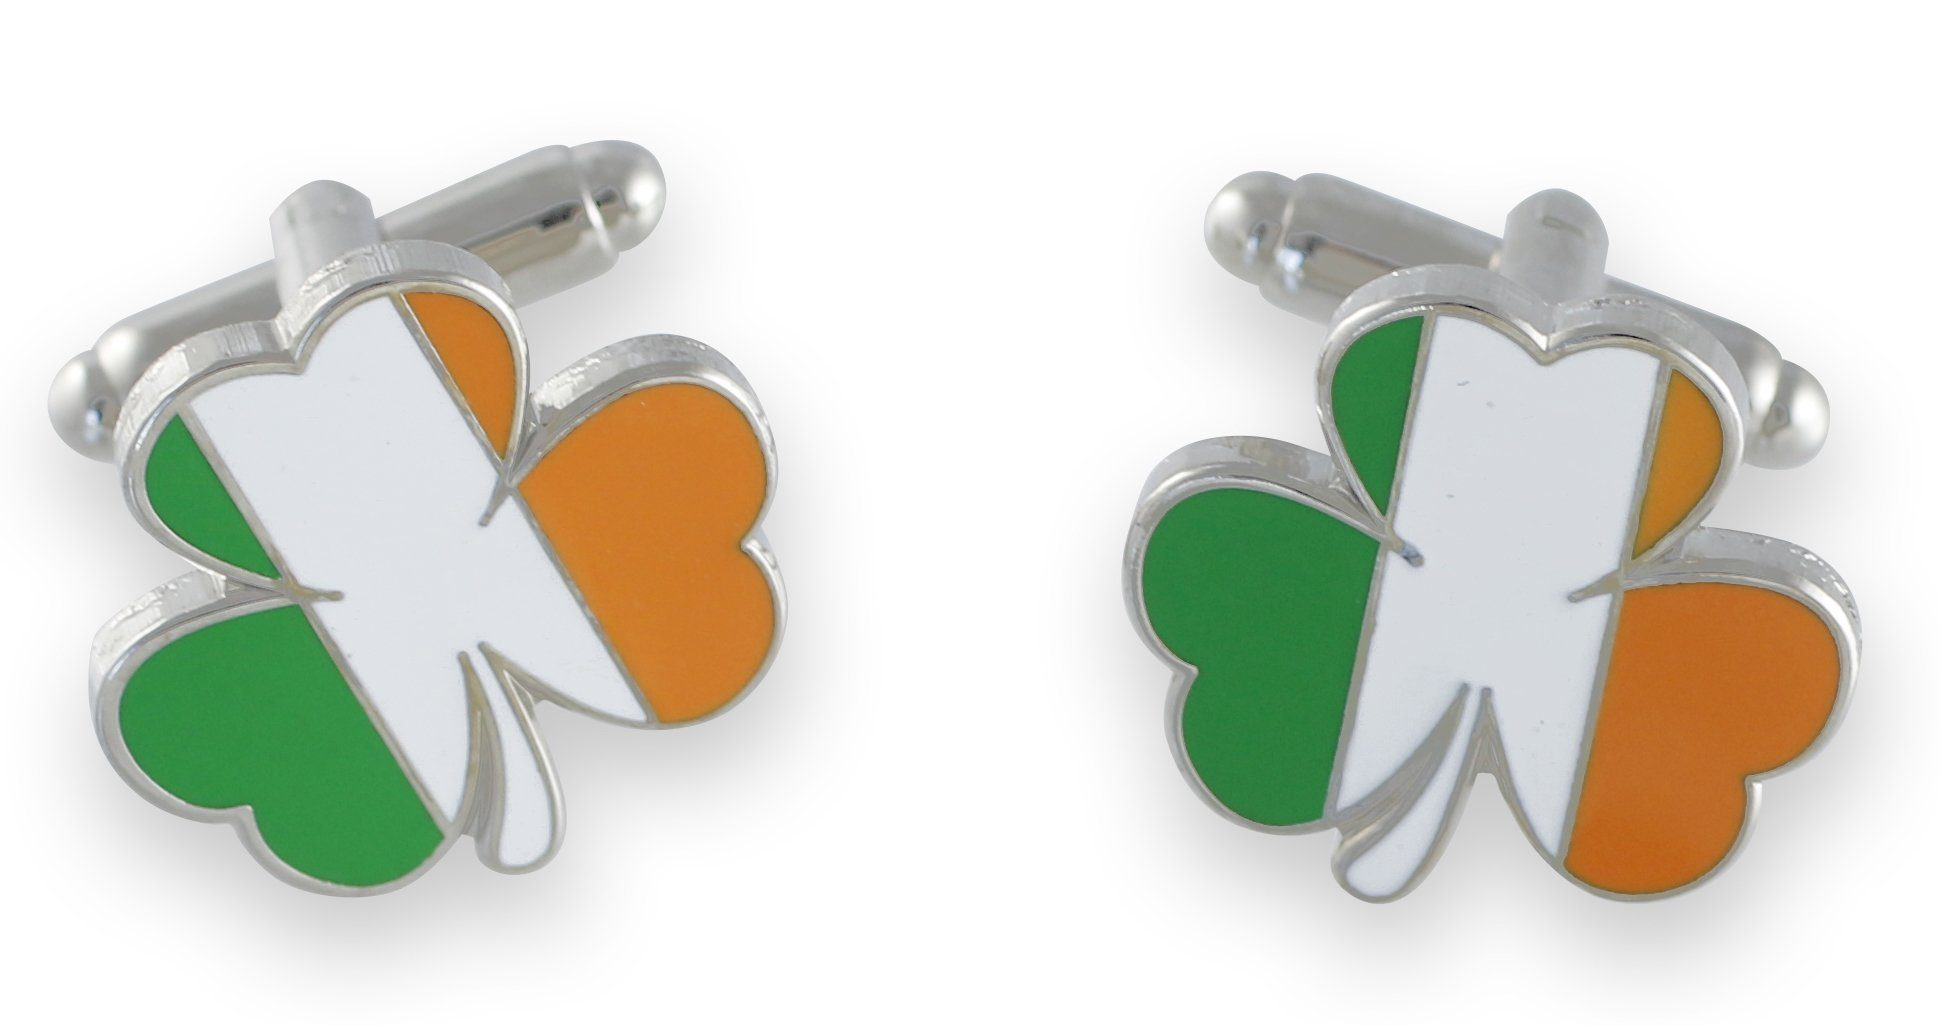 Irish Flag/Green Enamel Shamrock Cufflinks Shiny Silver